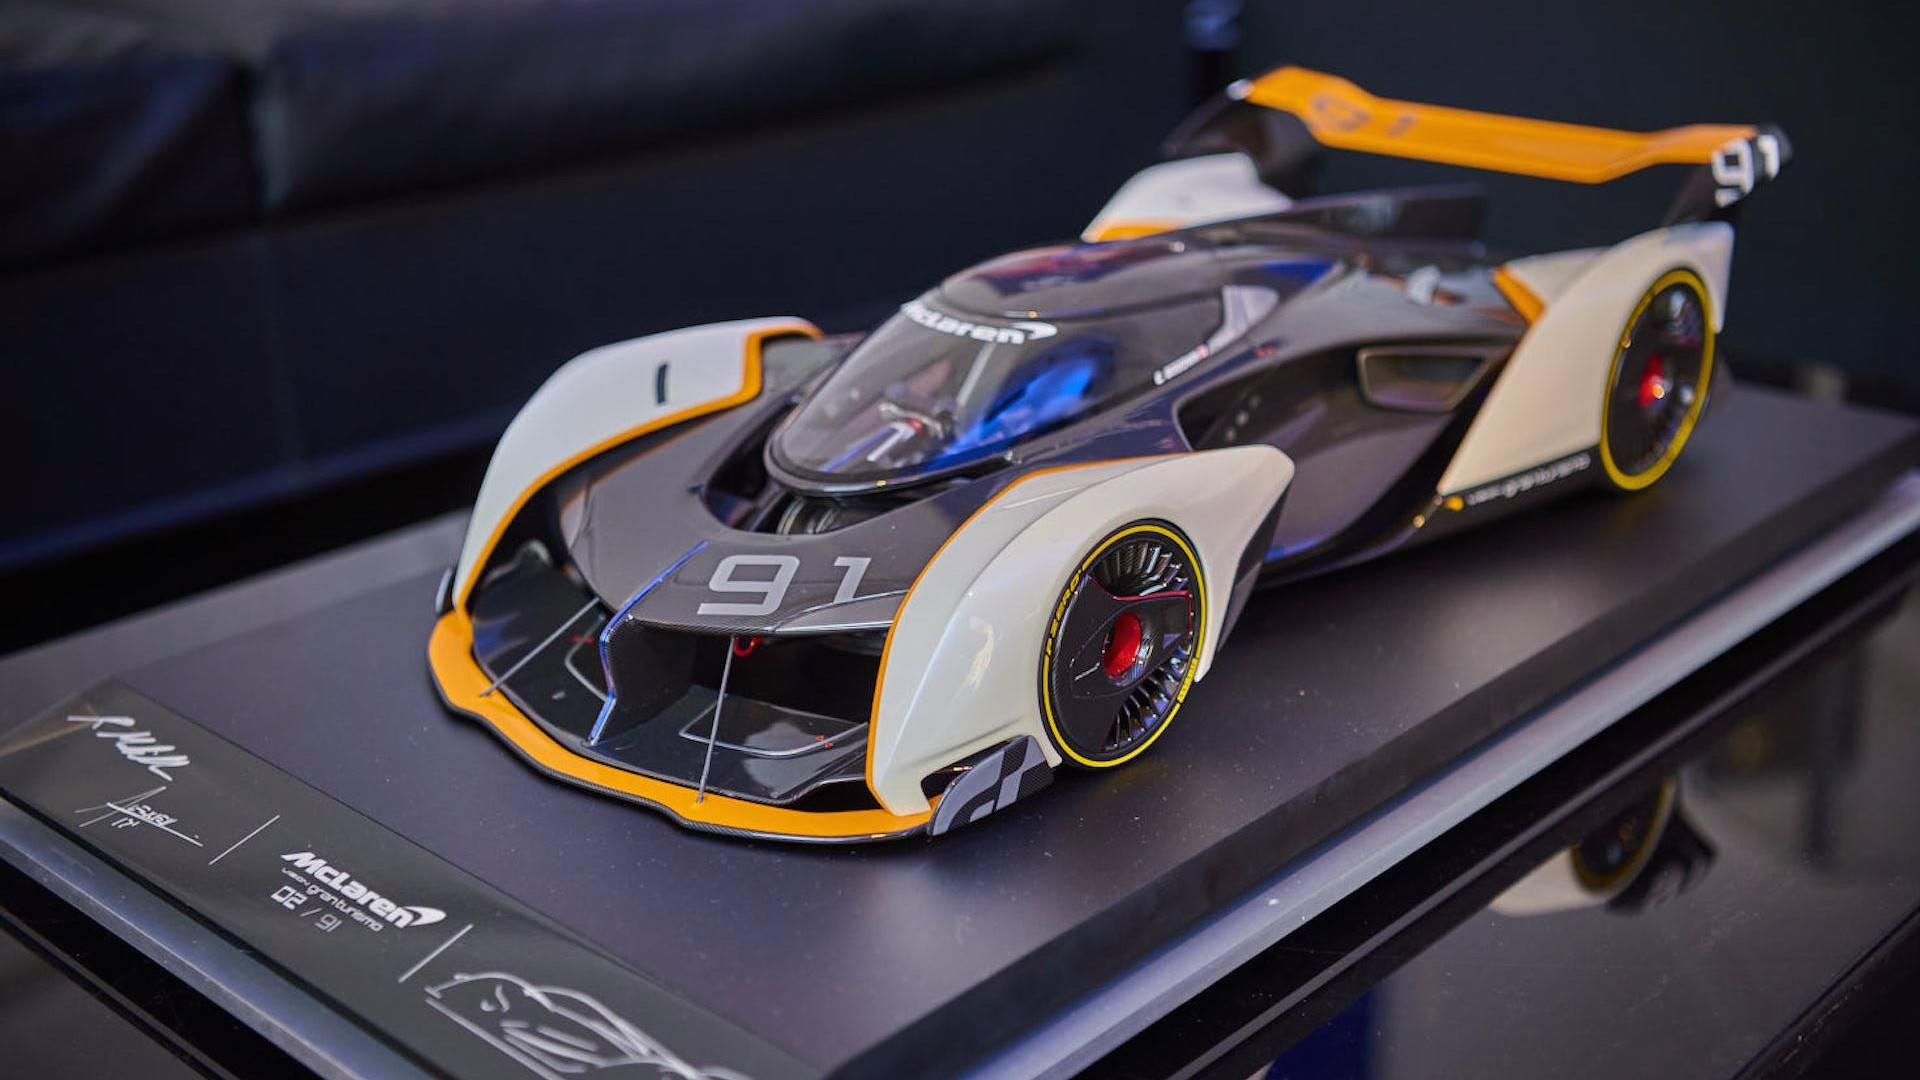 mclaren-ultimate-vision-gt-scale-model (36)